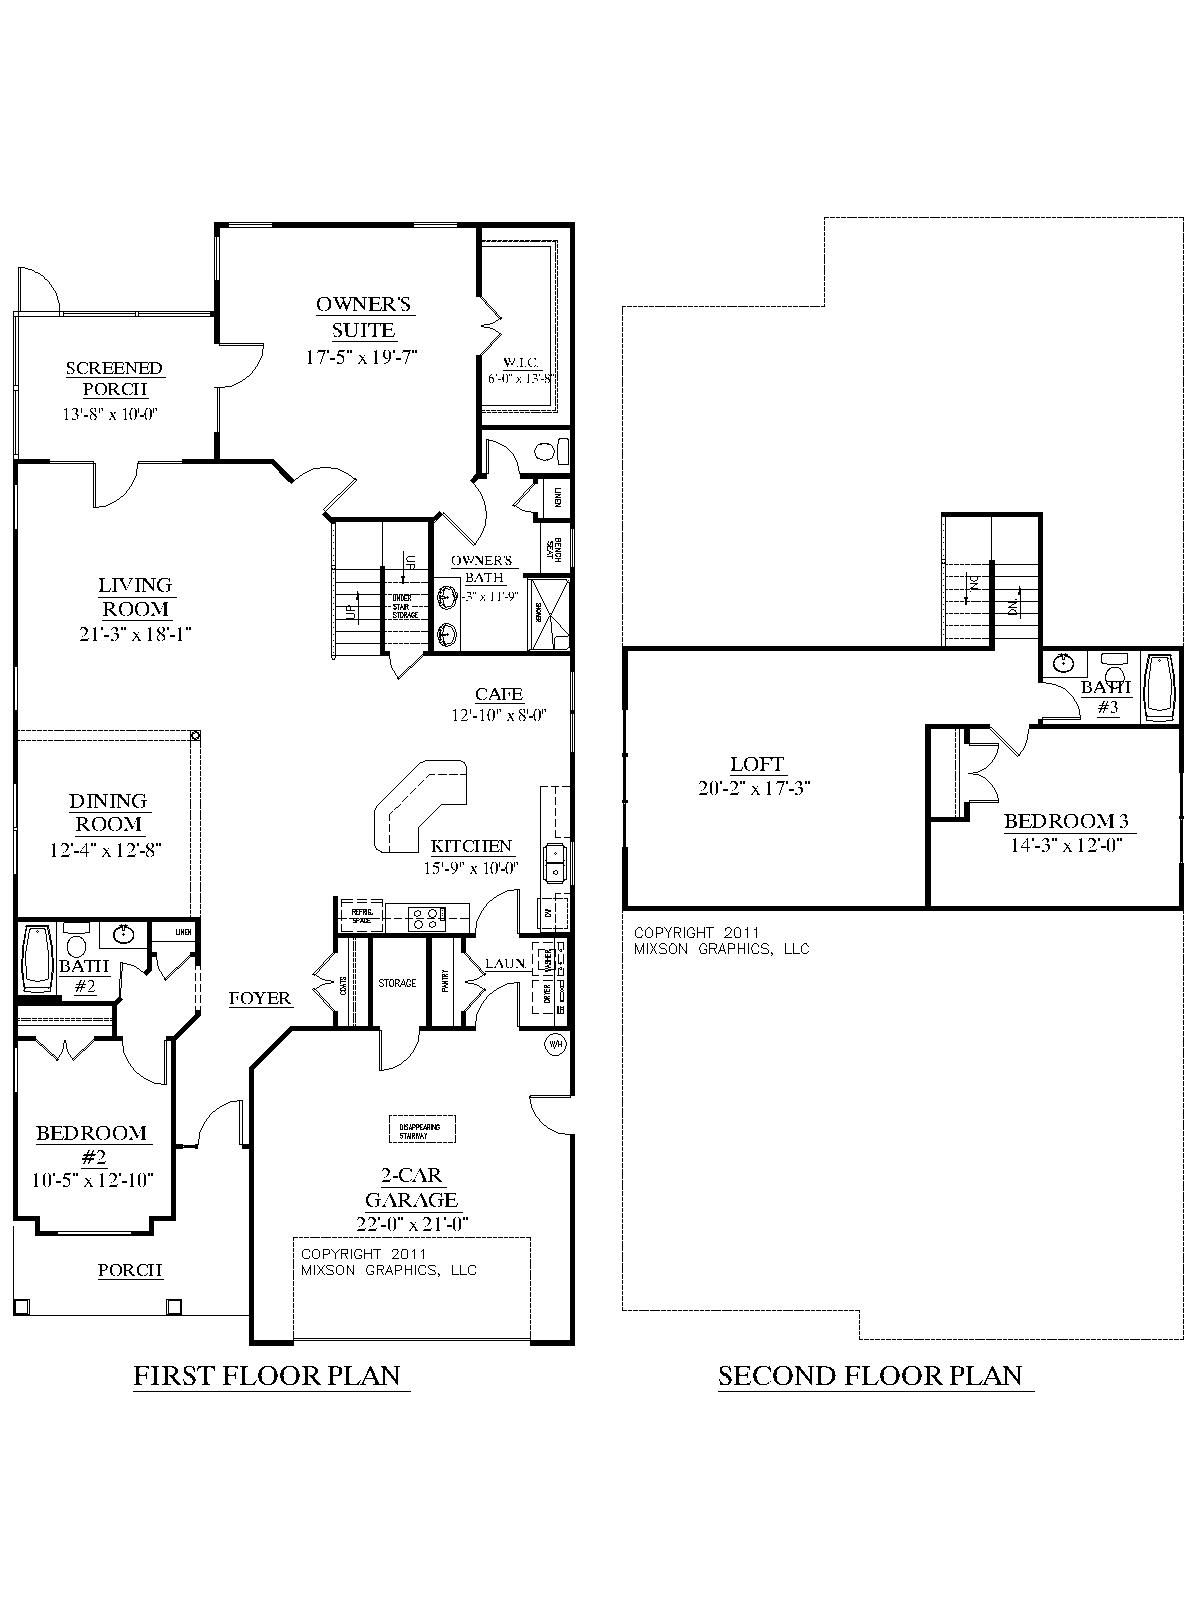 House Plan 2755 WOODBRIDGE floor plan   Traditional house plan with 3  bedrooms and 3 full baths  Large  open living area  Master Suite and second  bedroom. House Plan 2755 WOODBRIDGE floor plan   Traditional 1 1 2 story